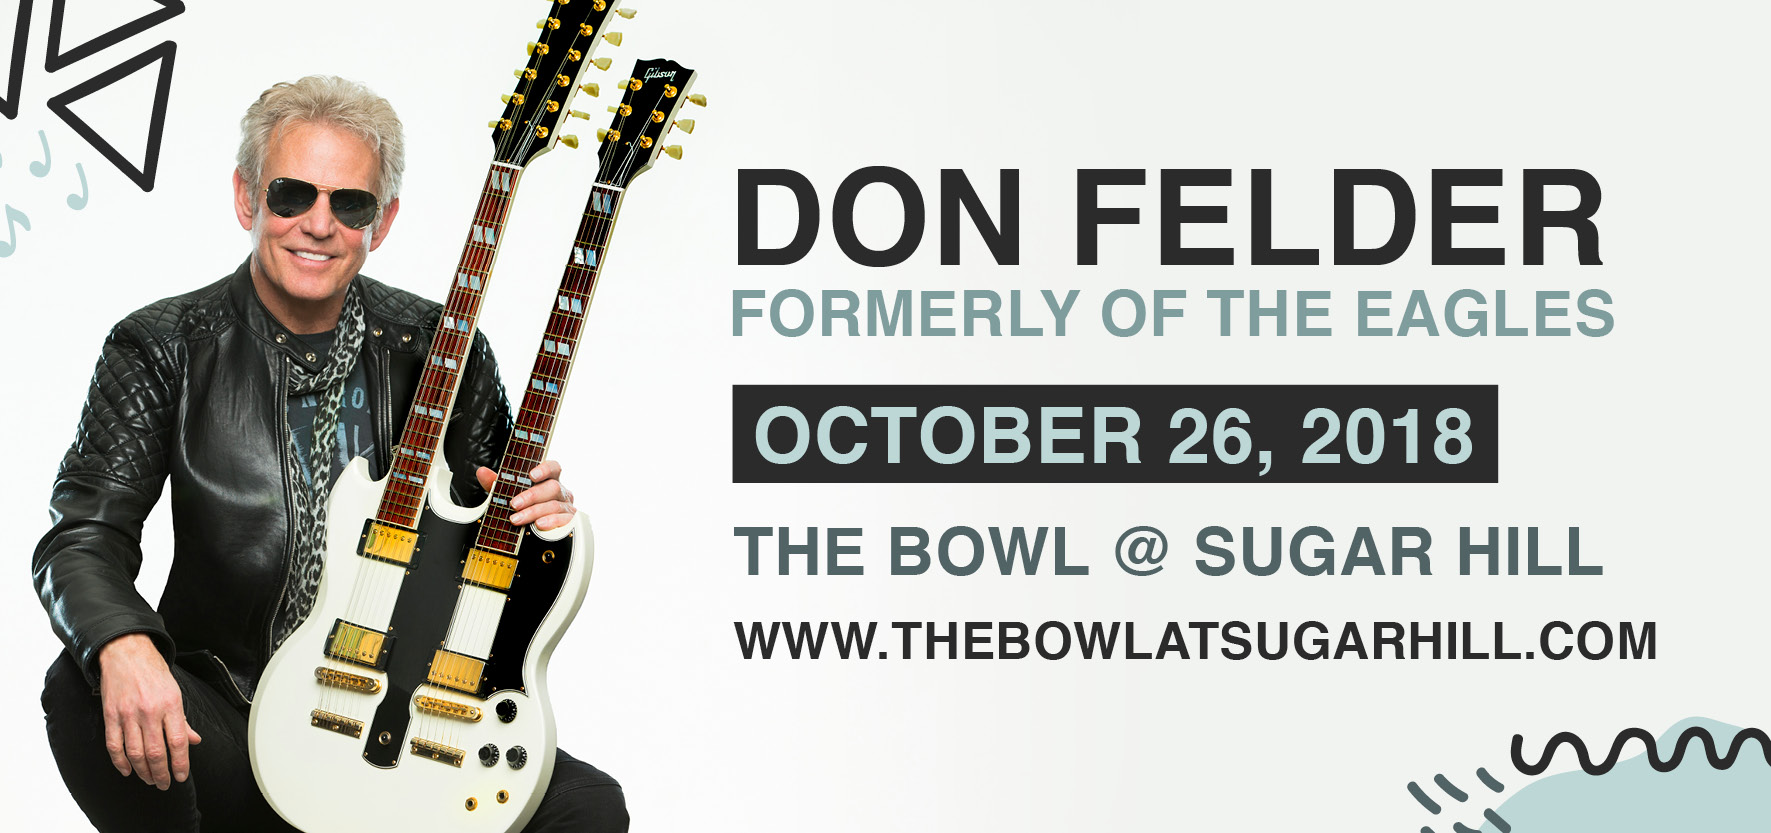 don felder the bowl sugar hill